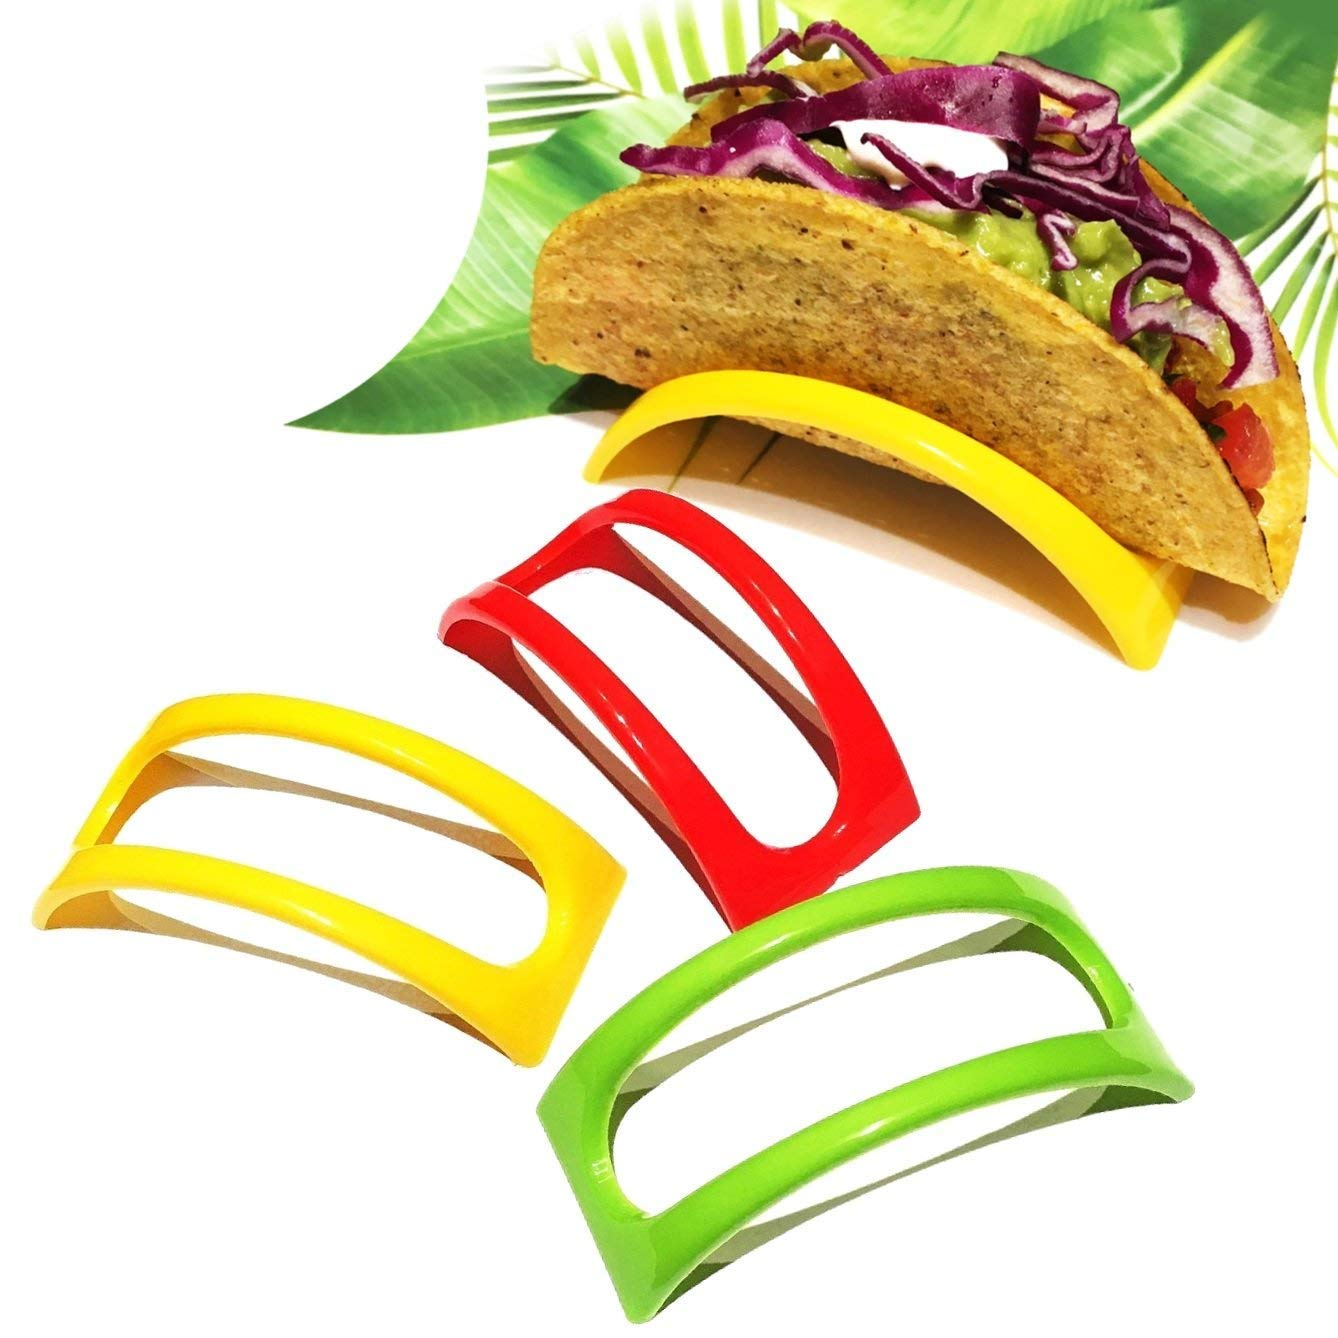 BPA Free Taco Rack Stand for Dinner Party Microwave Safe Taco Shell Holders DodoBee 12PCS Taco Holder Dishwasher and Grill Safe Taco Stand for Soft and Hard Shells Colorful Non-Toxic Taco Holders